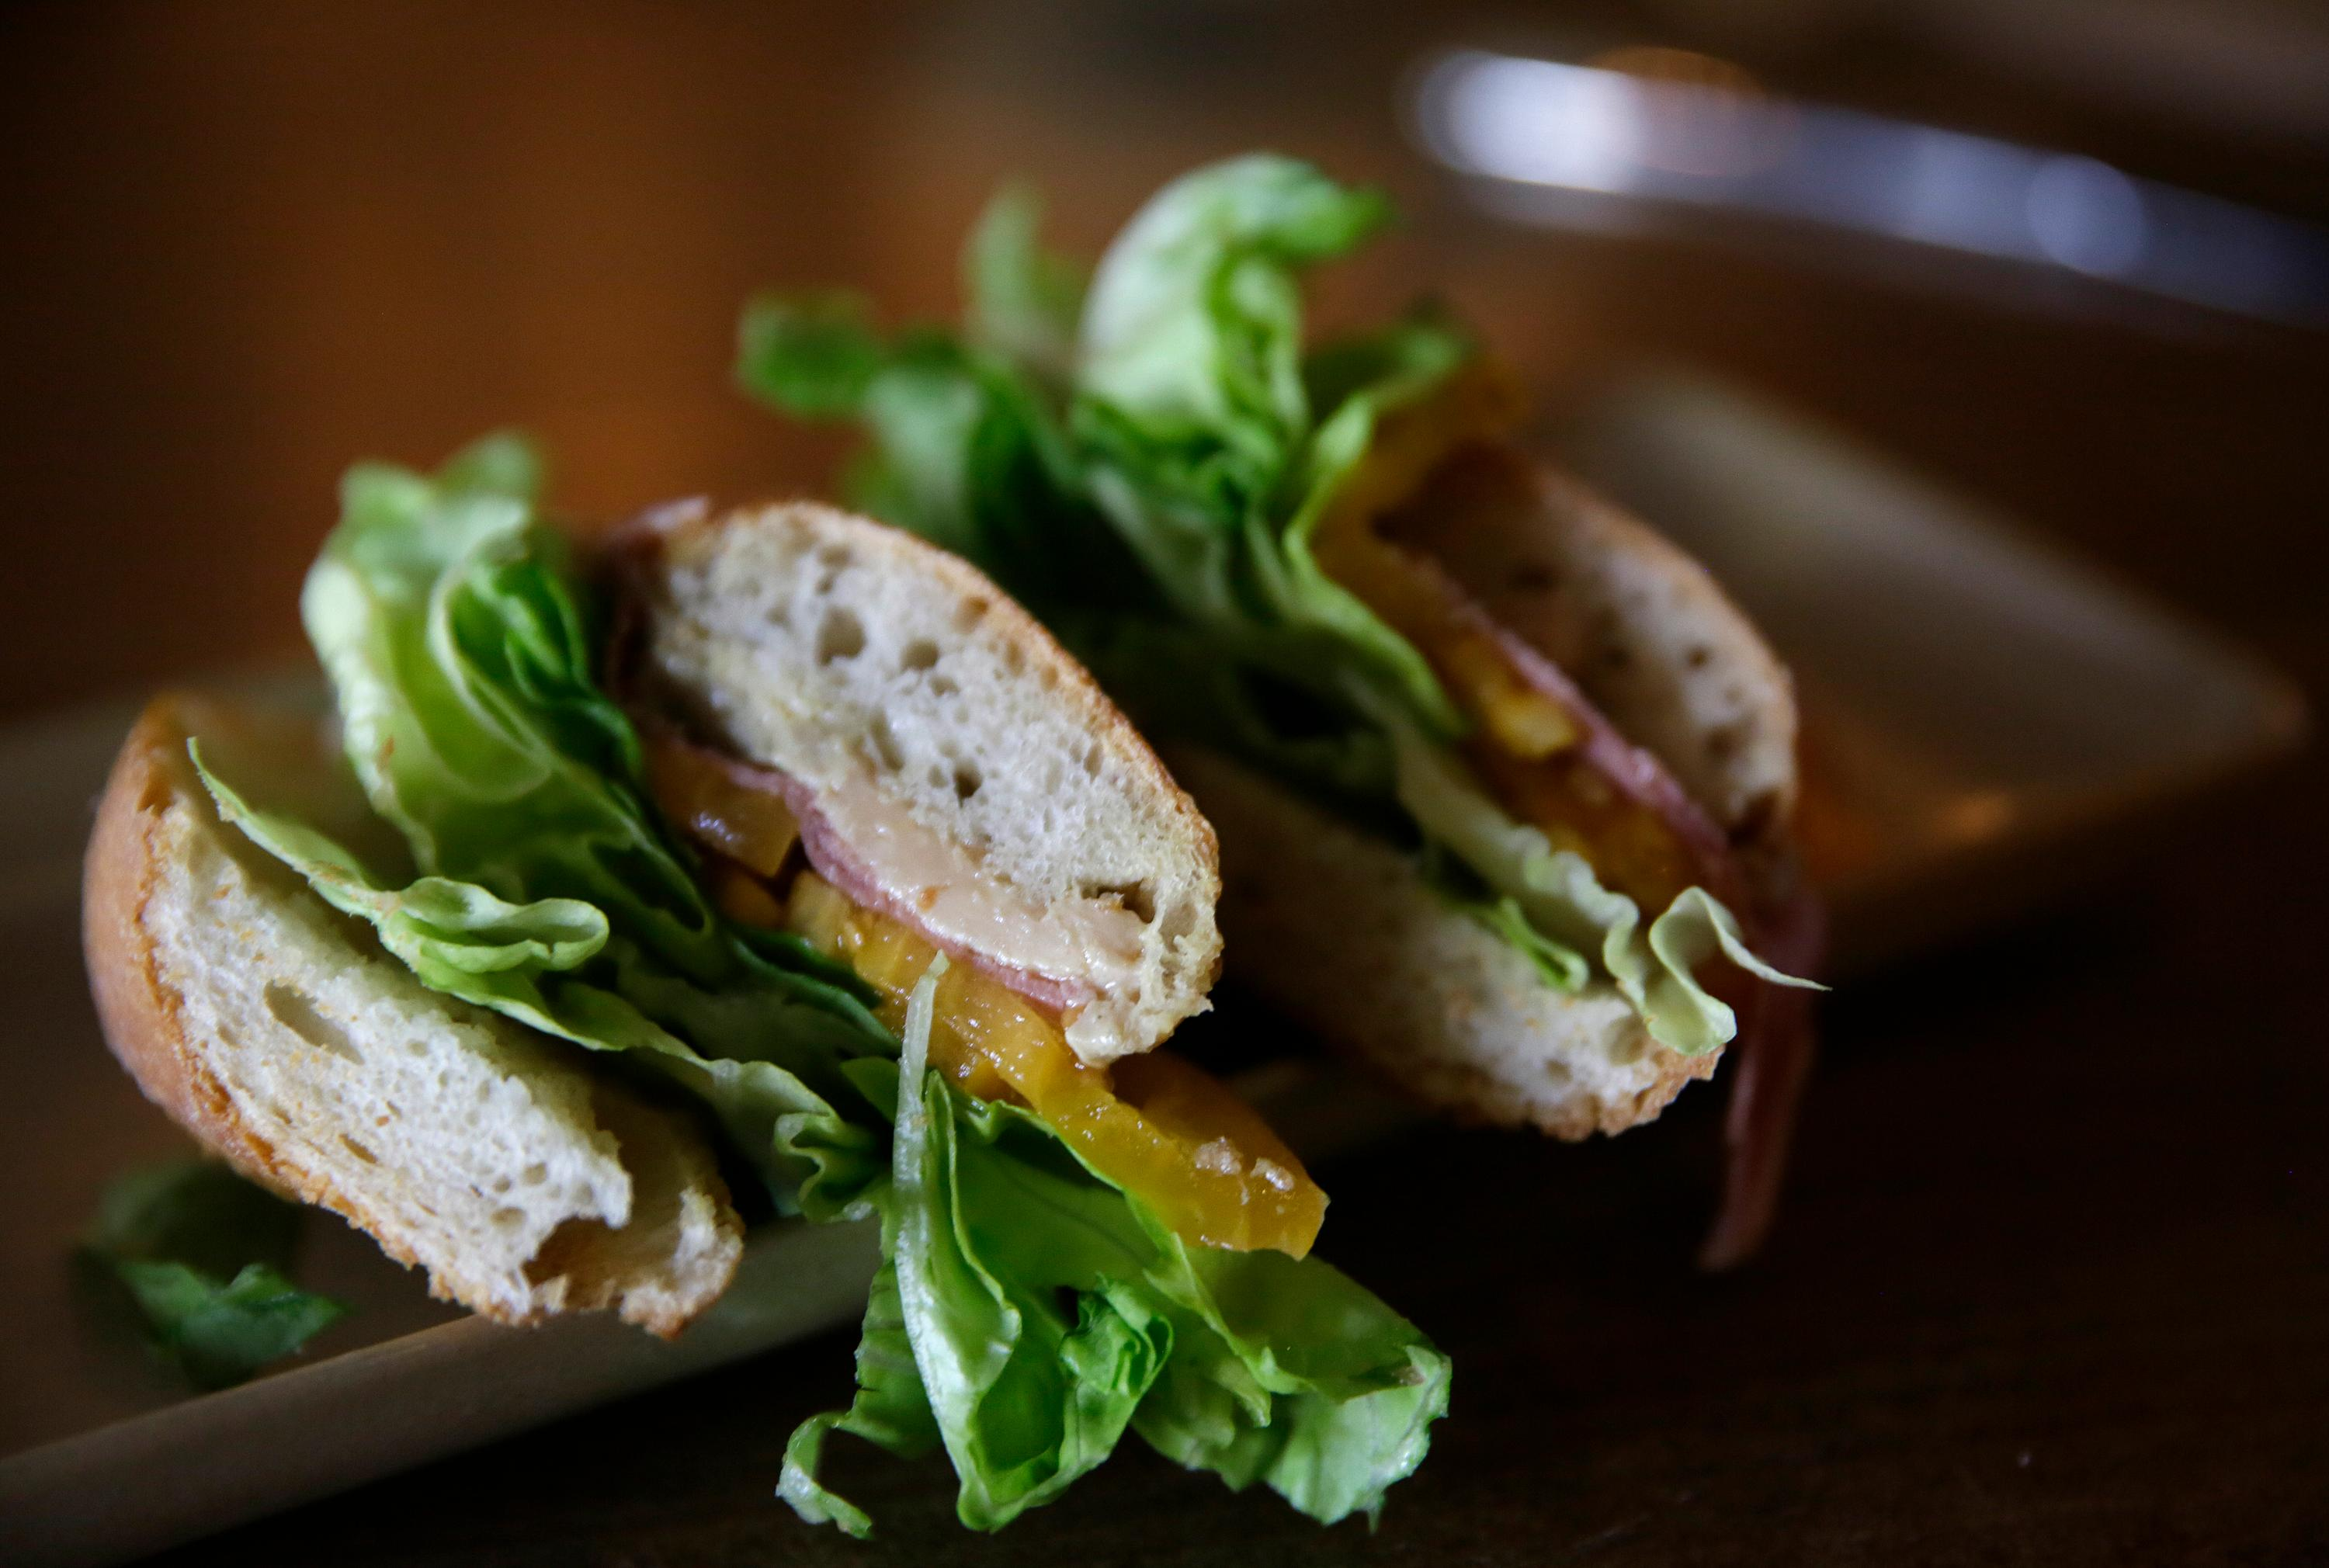 A Foie Gras Torchon sandwich is seen after being served at the Naked Lunch restaurant Friday, Sept. 15, 2017, in San Francisco. (AP Photo/Eric Risberg)